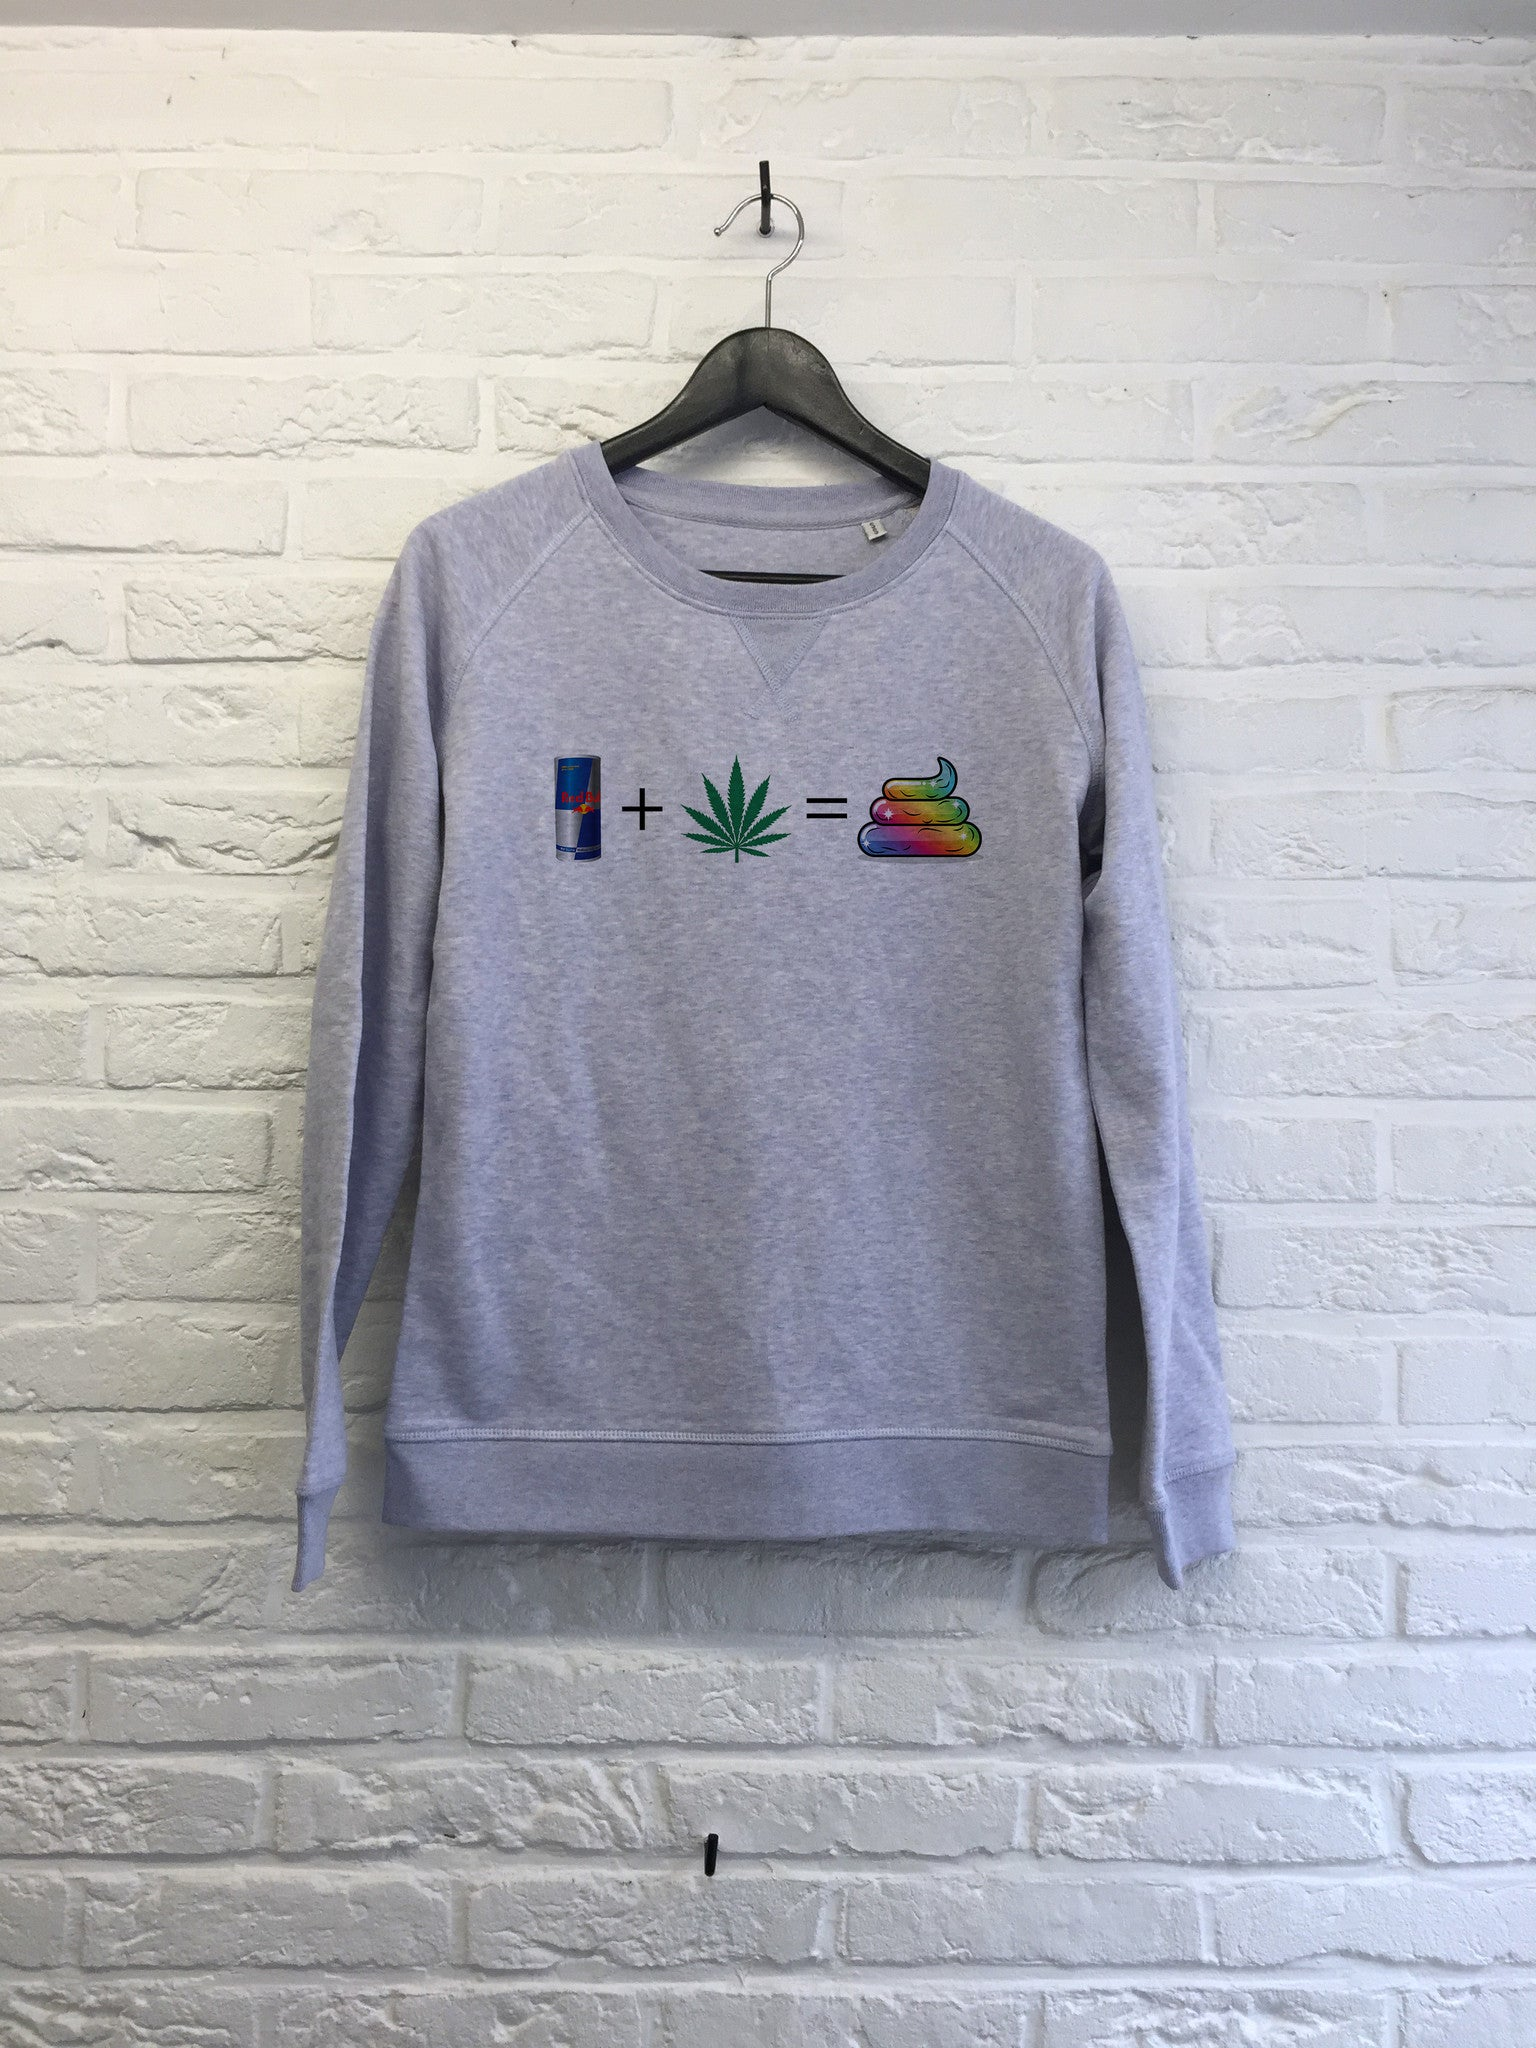 Redbull Weed Caca - Sweat - Femme-Sweat shirts-Atelier Amelot